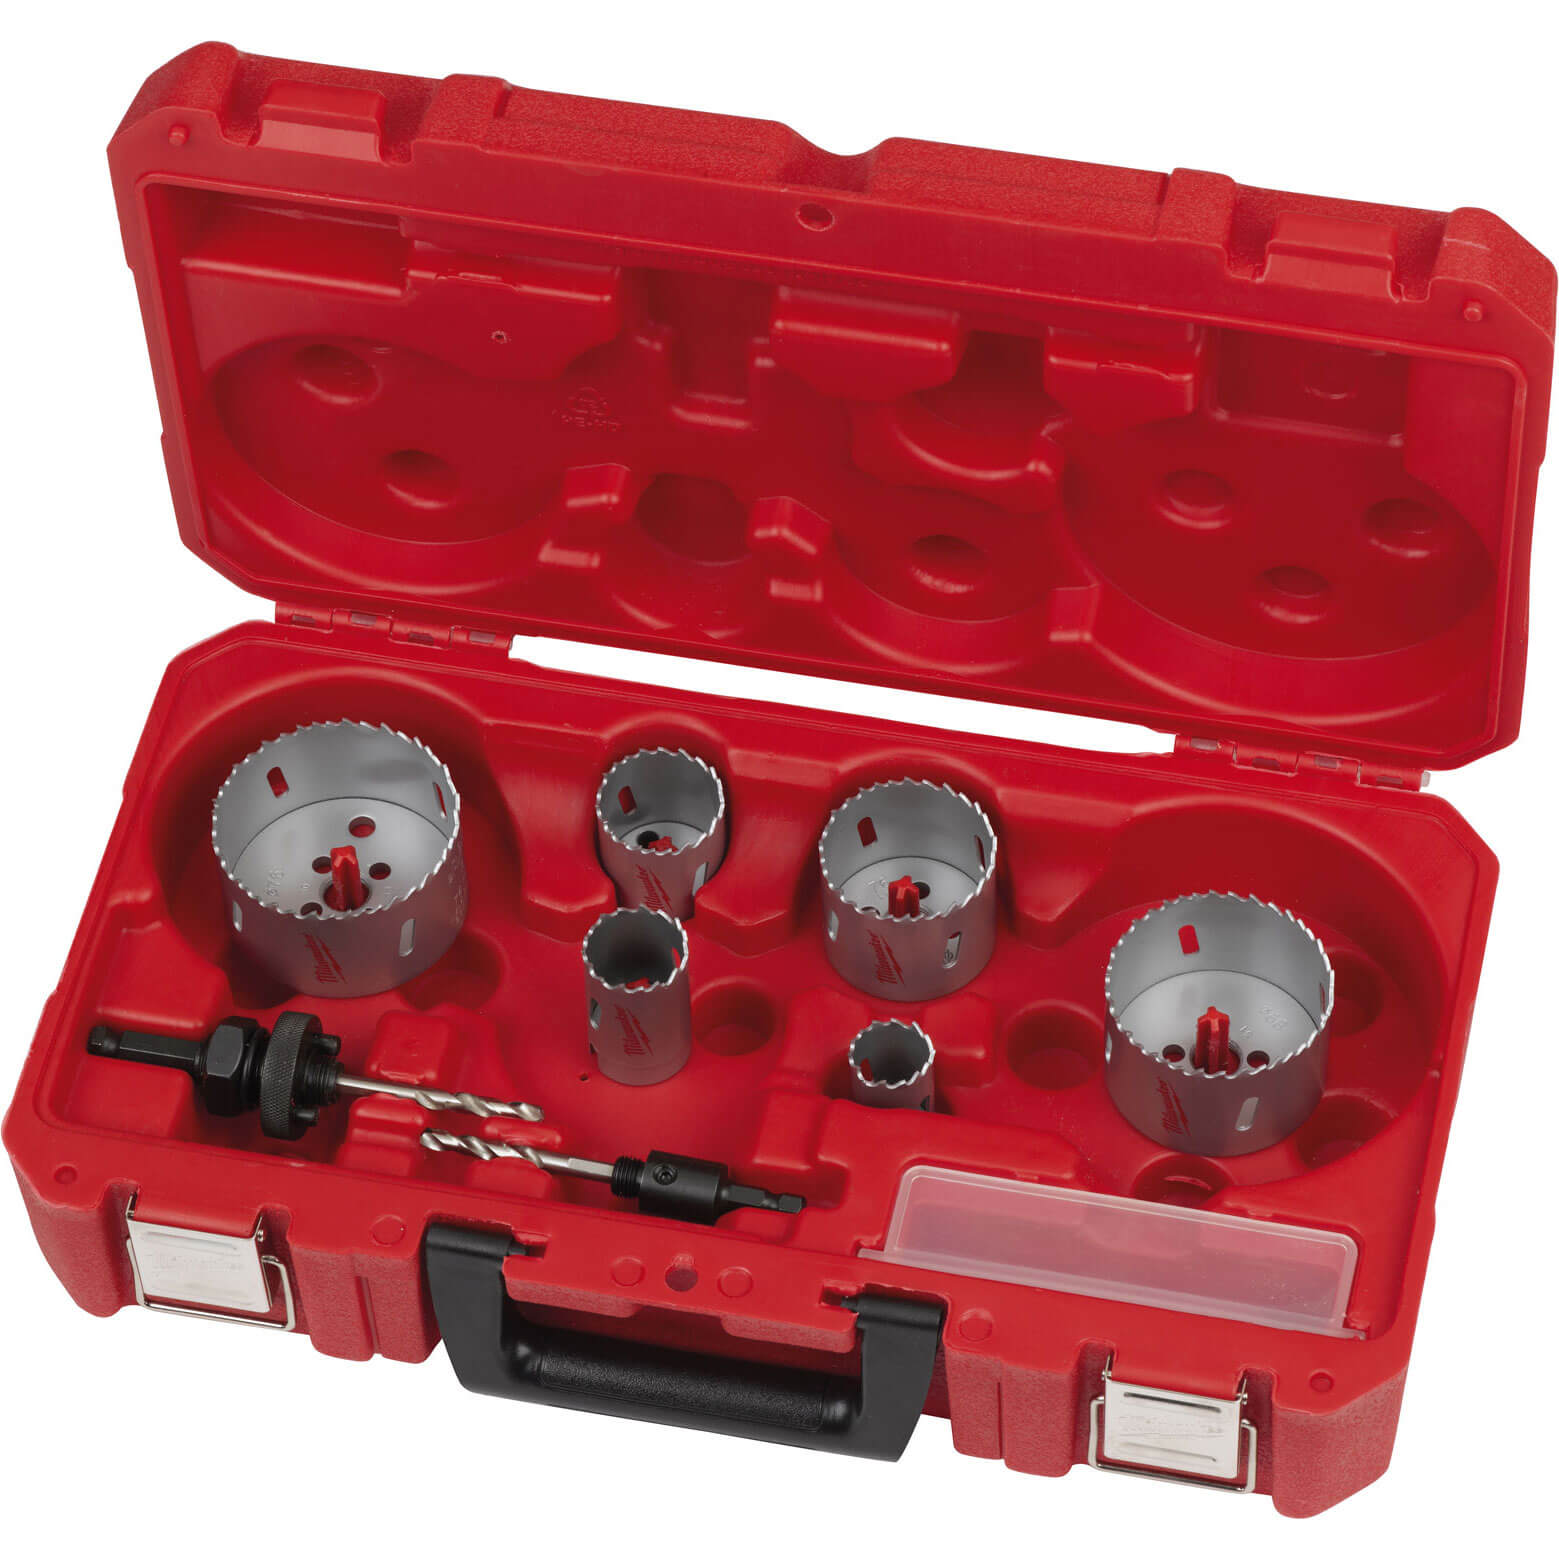 Image of Milwaukee 10 Piece Contrator Bi-Metal Holesaw Set